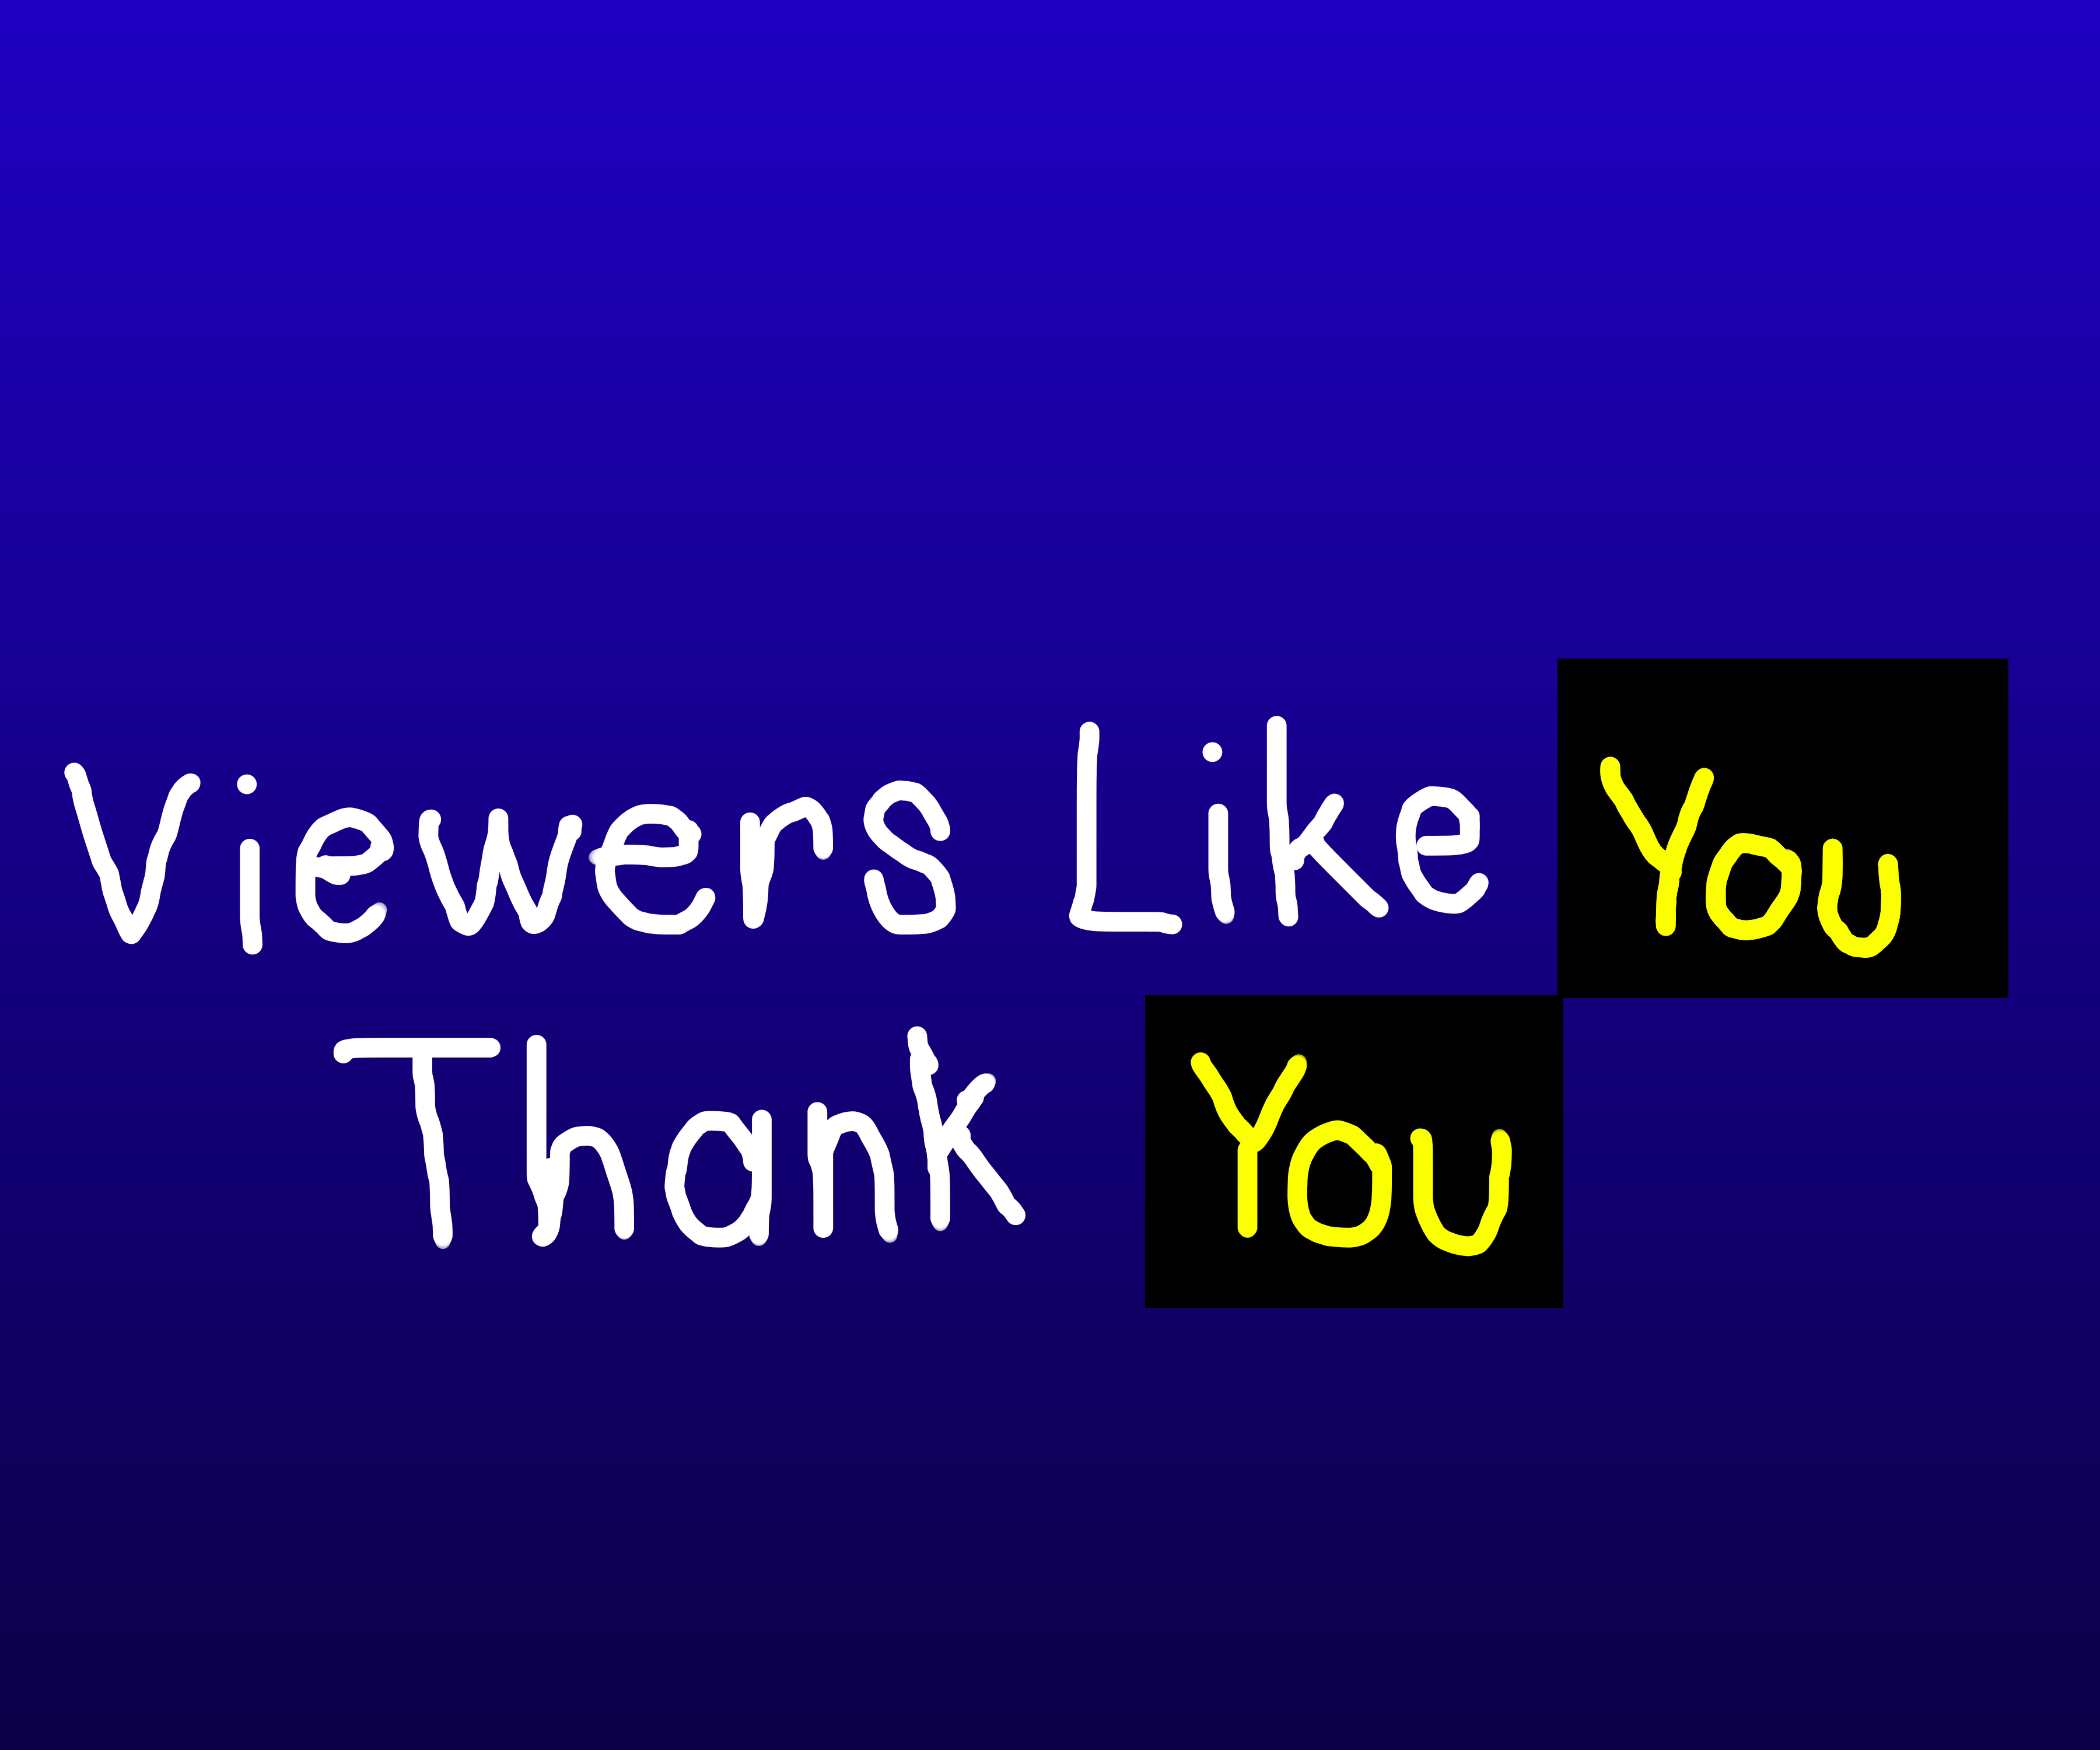 Viewers like you thank you